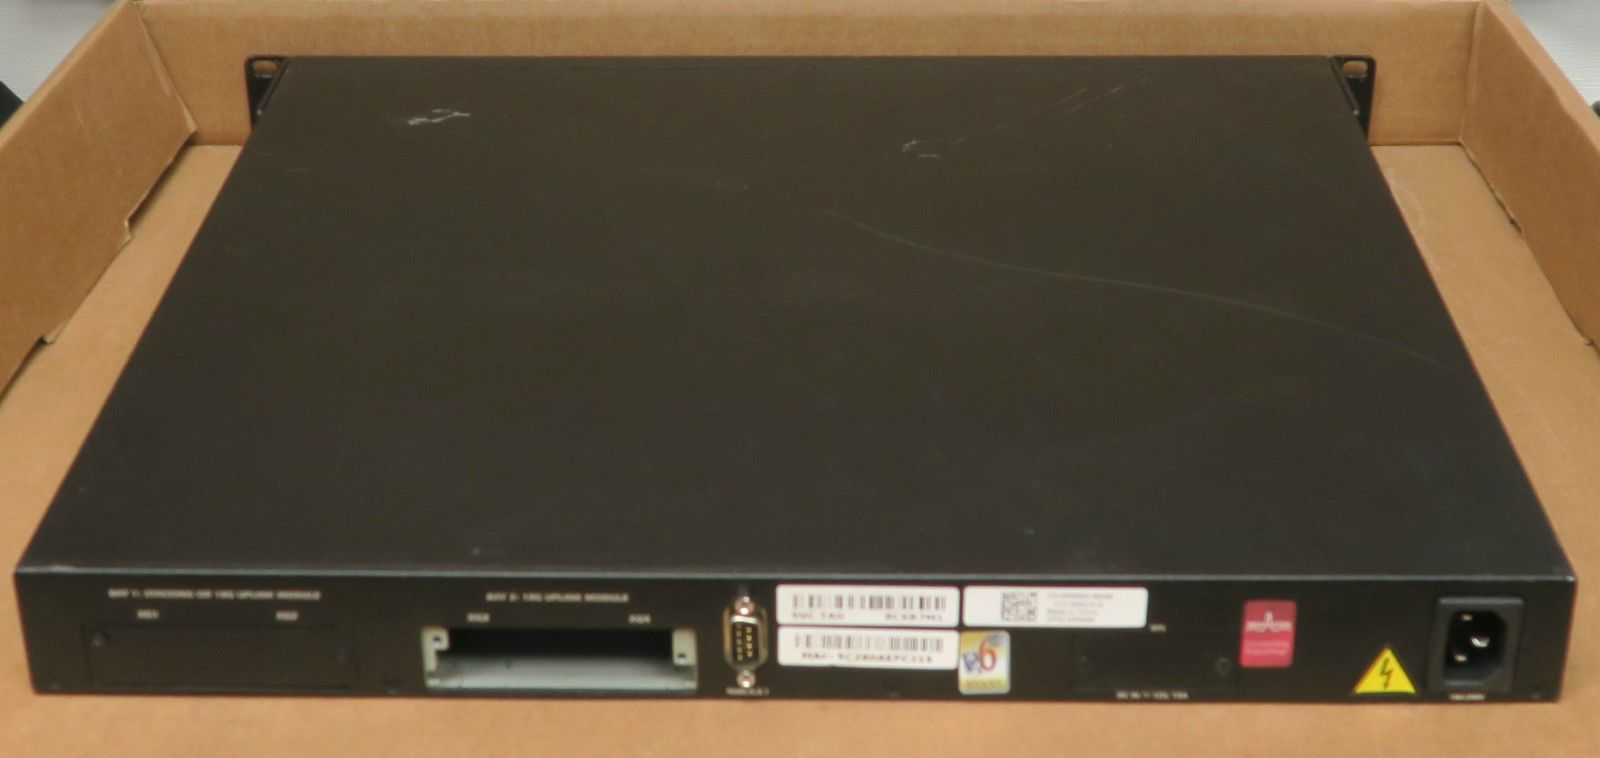 Dell Powerconnect 6224 24 Port Managed Gigabit Ethernet